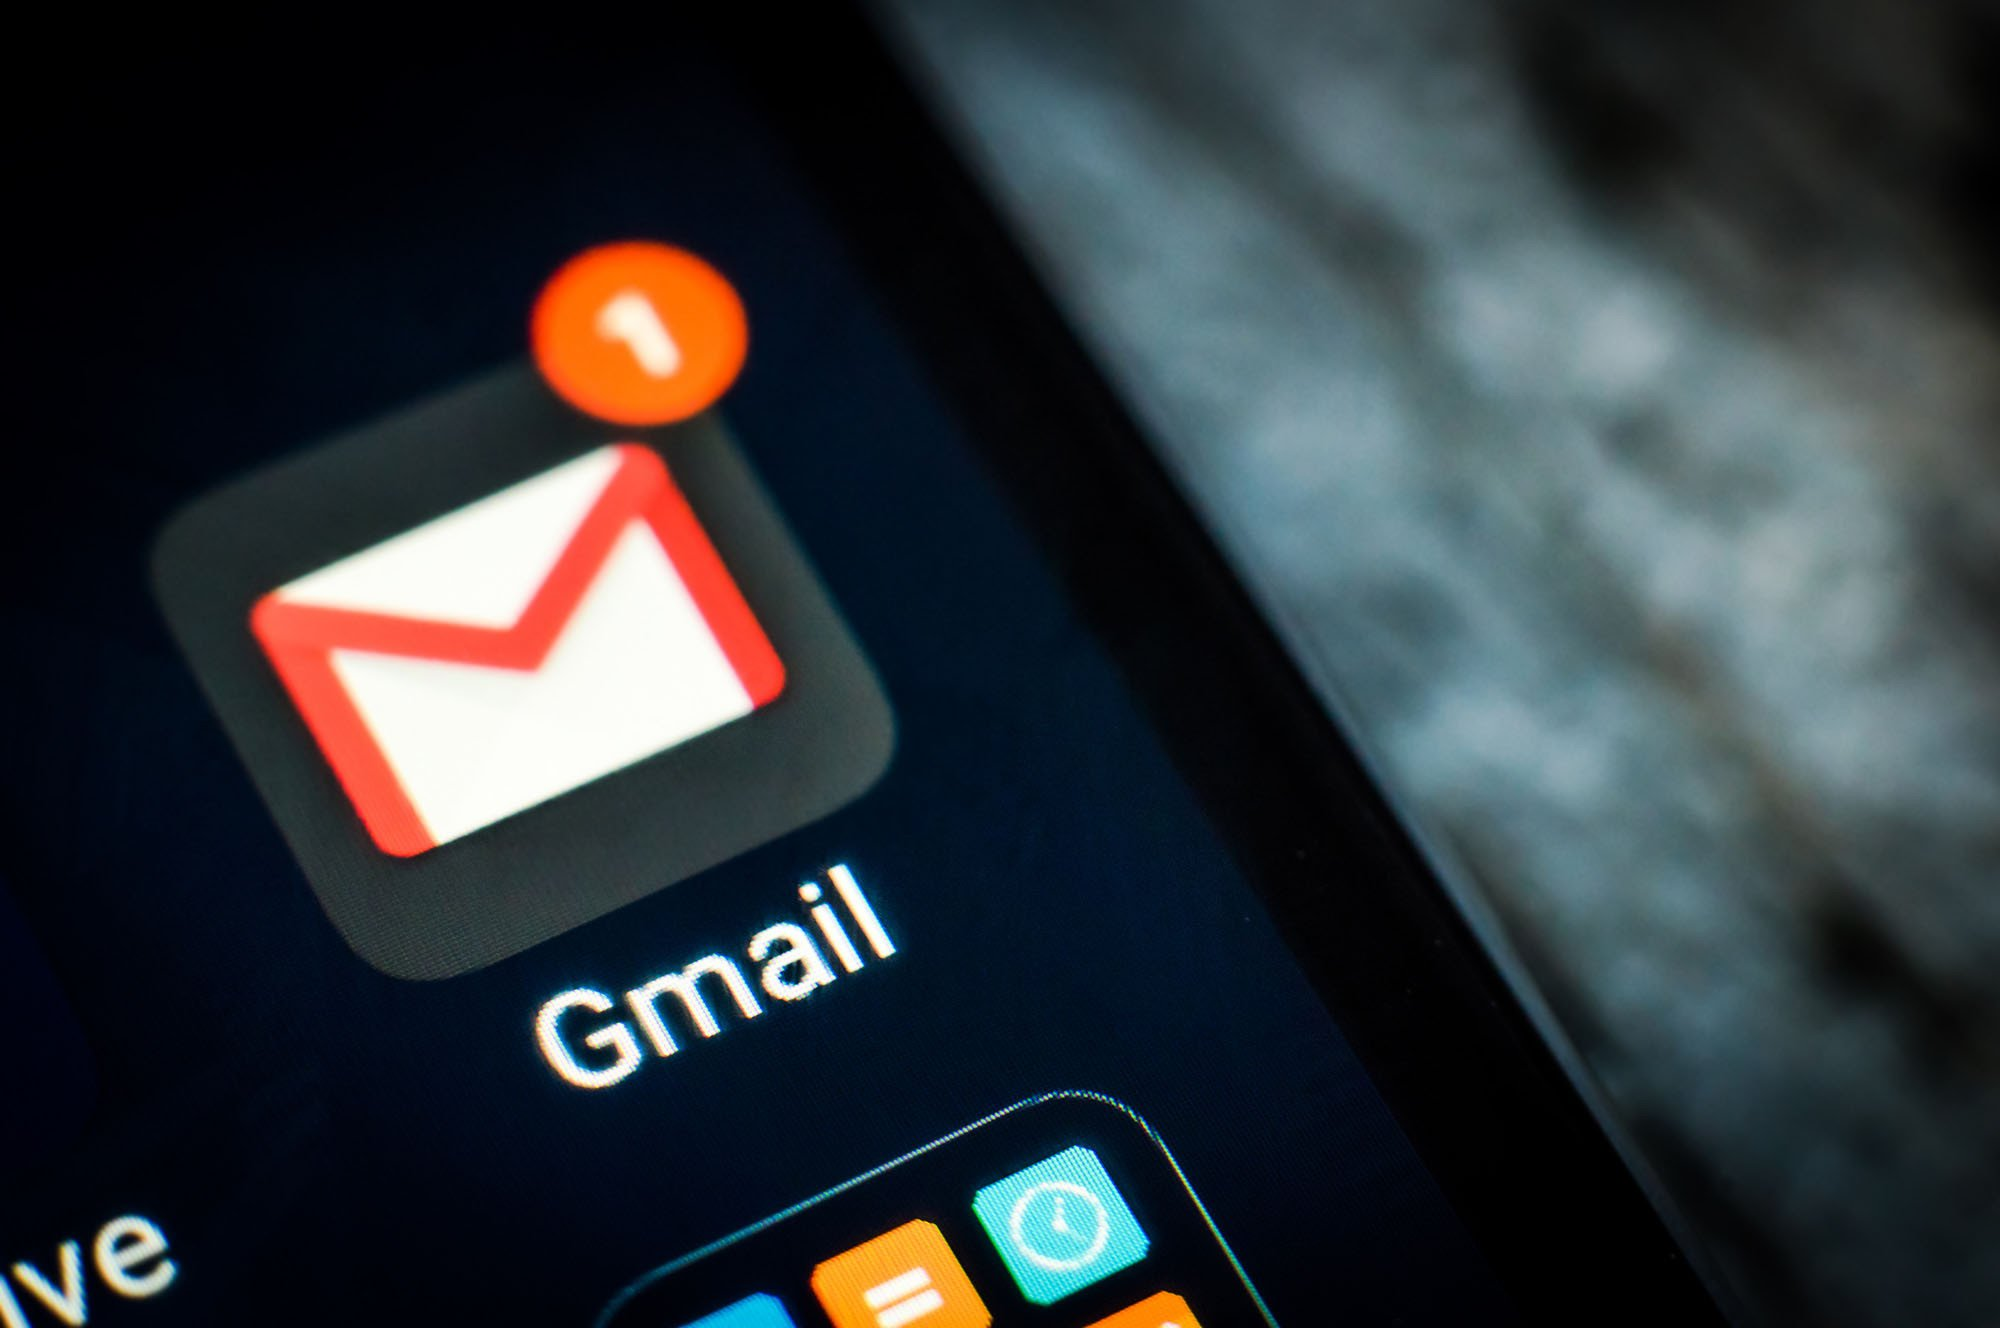 Gmail allows developers to read your emails